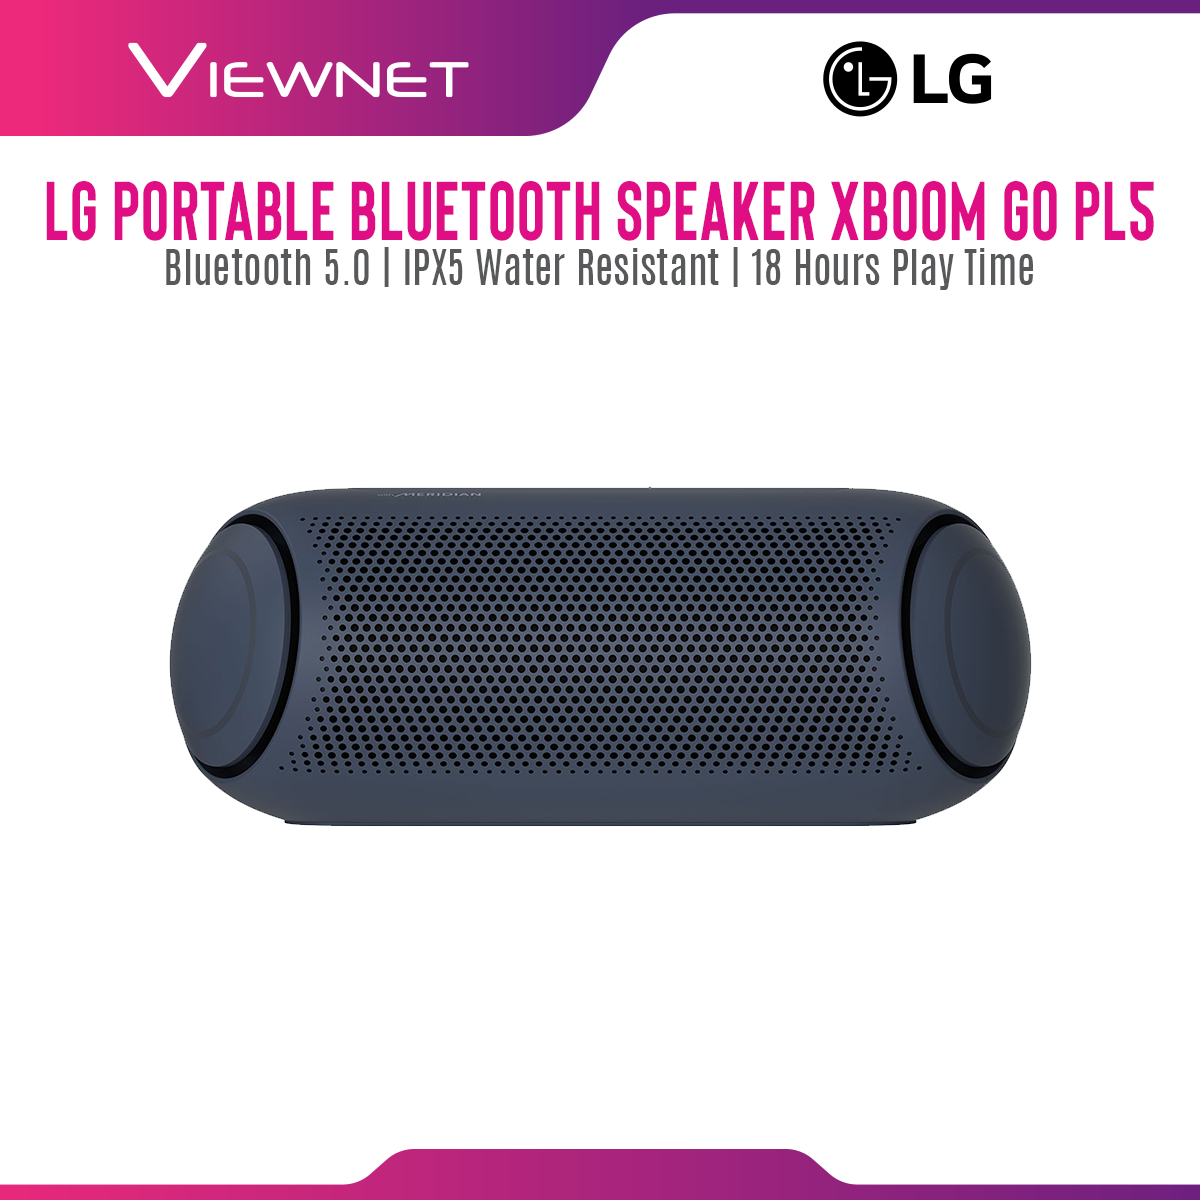 LG Portable Bluetooth Speaker XBOOM Go PL5 with Meridian Audio Technology, LG XBOOM Bluetooth App, IPX 5 Water-Resistant, Up To 18 Hours of Battery Life